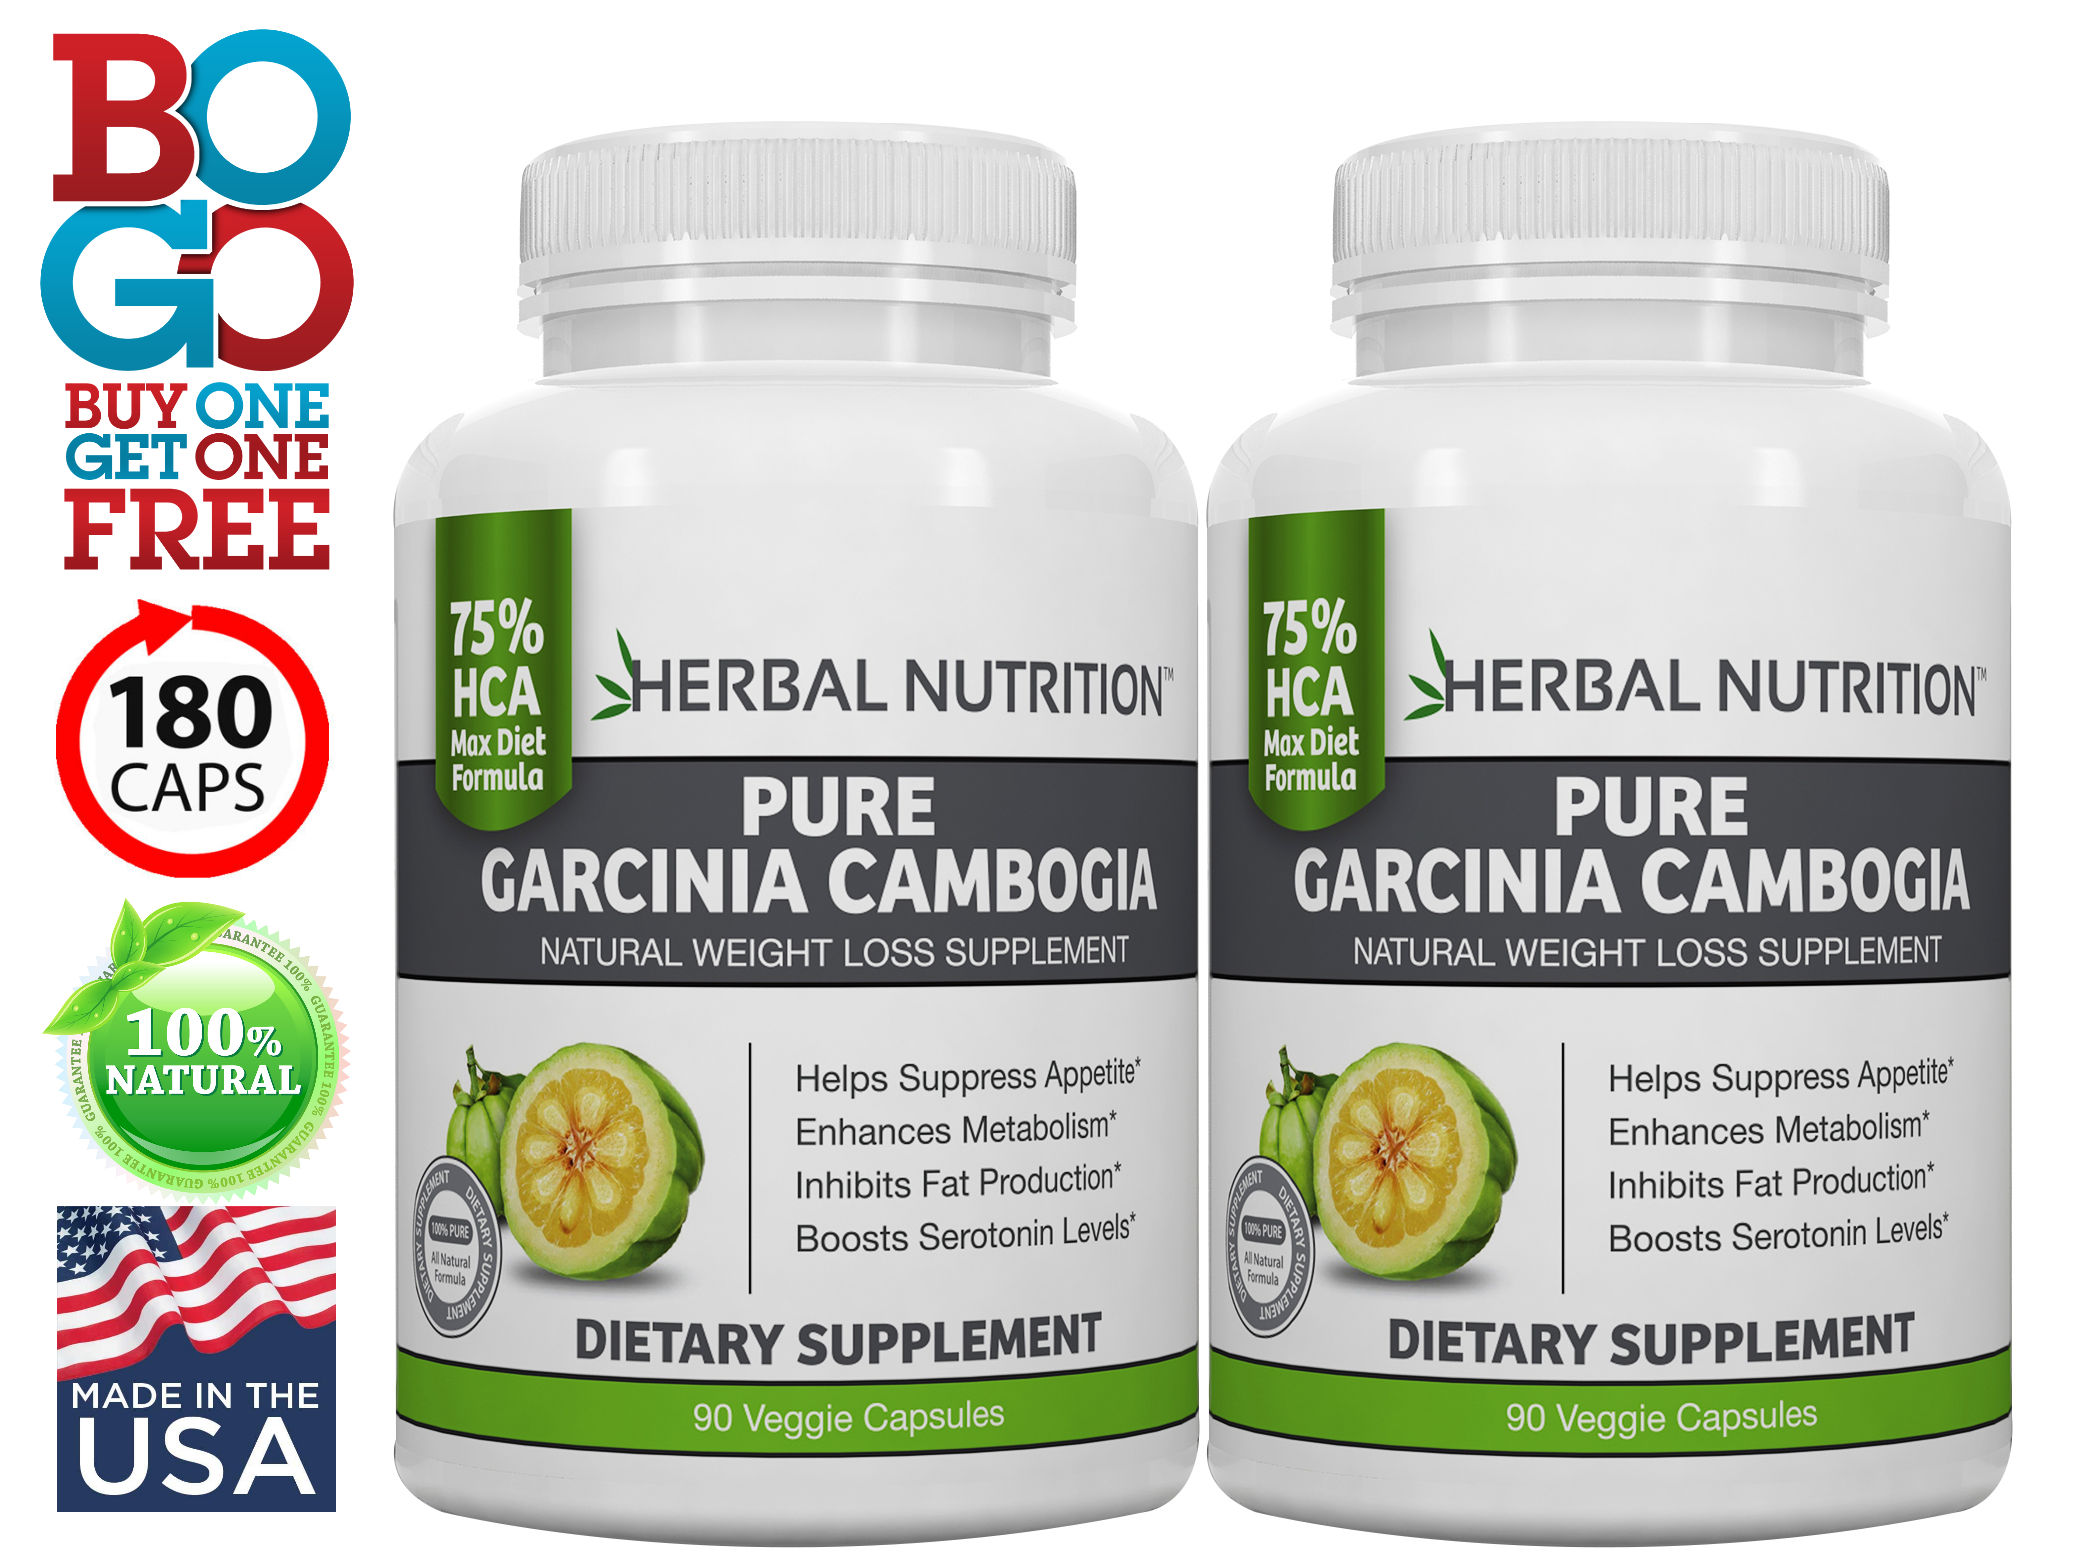 Gacinia Cambogia Two Bottles